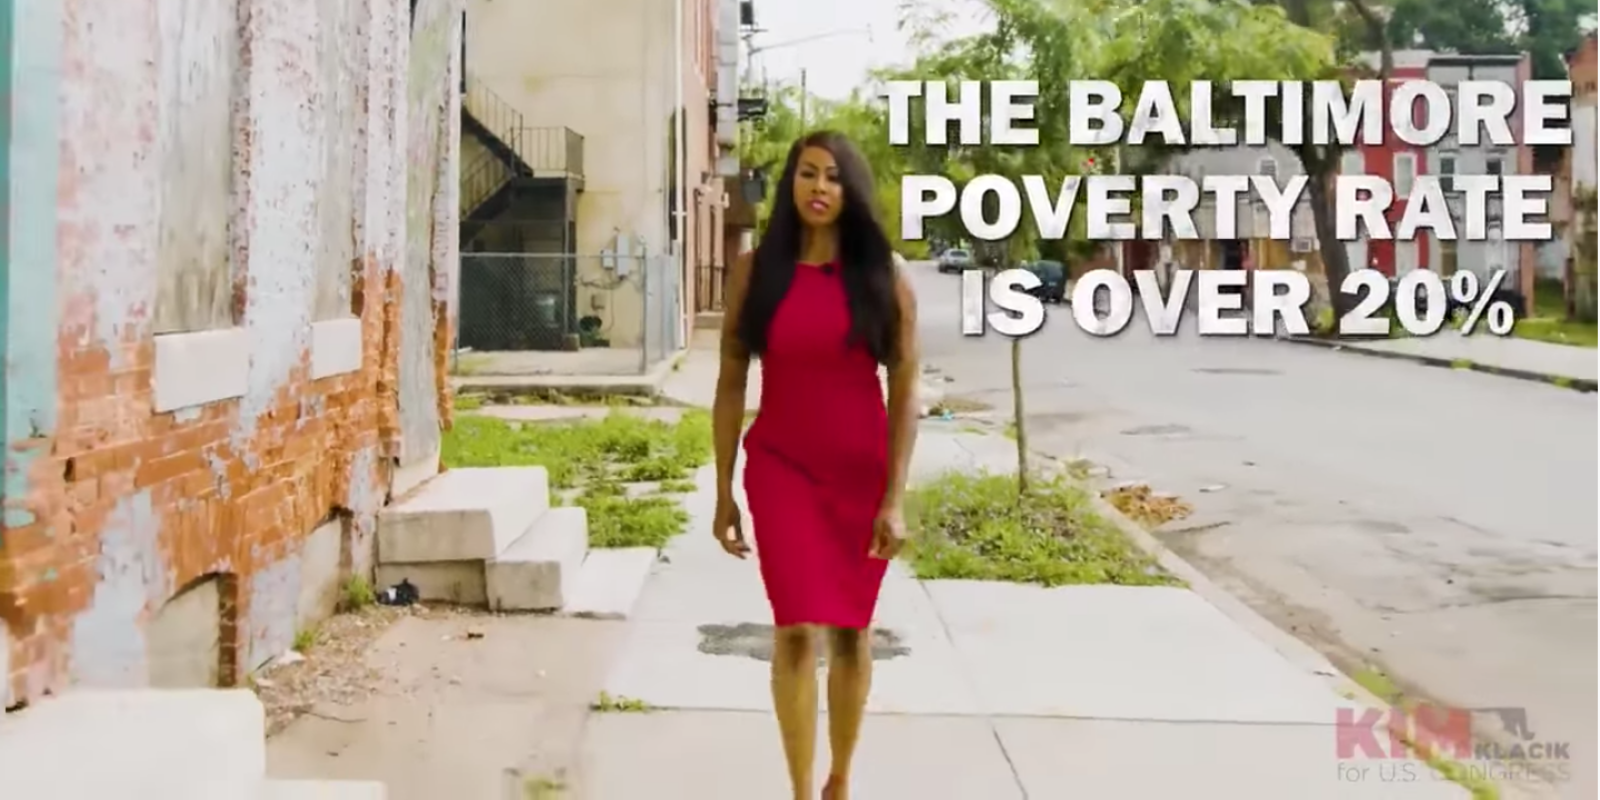 EXCLUSIVE: Black Republican congressional candidate Kimberly Klacik speaks out after viral video